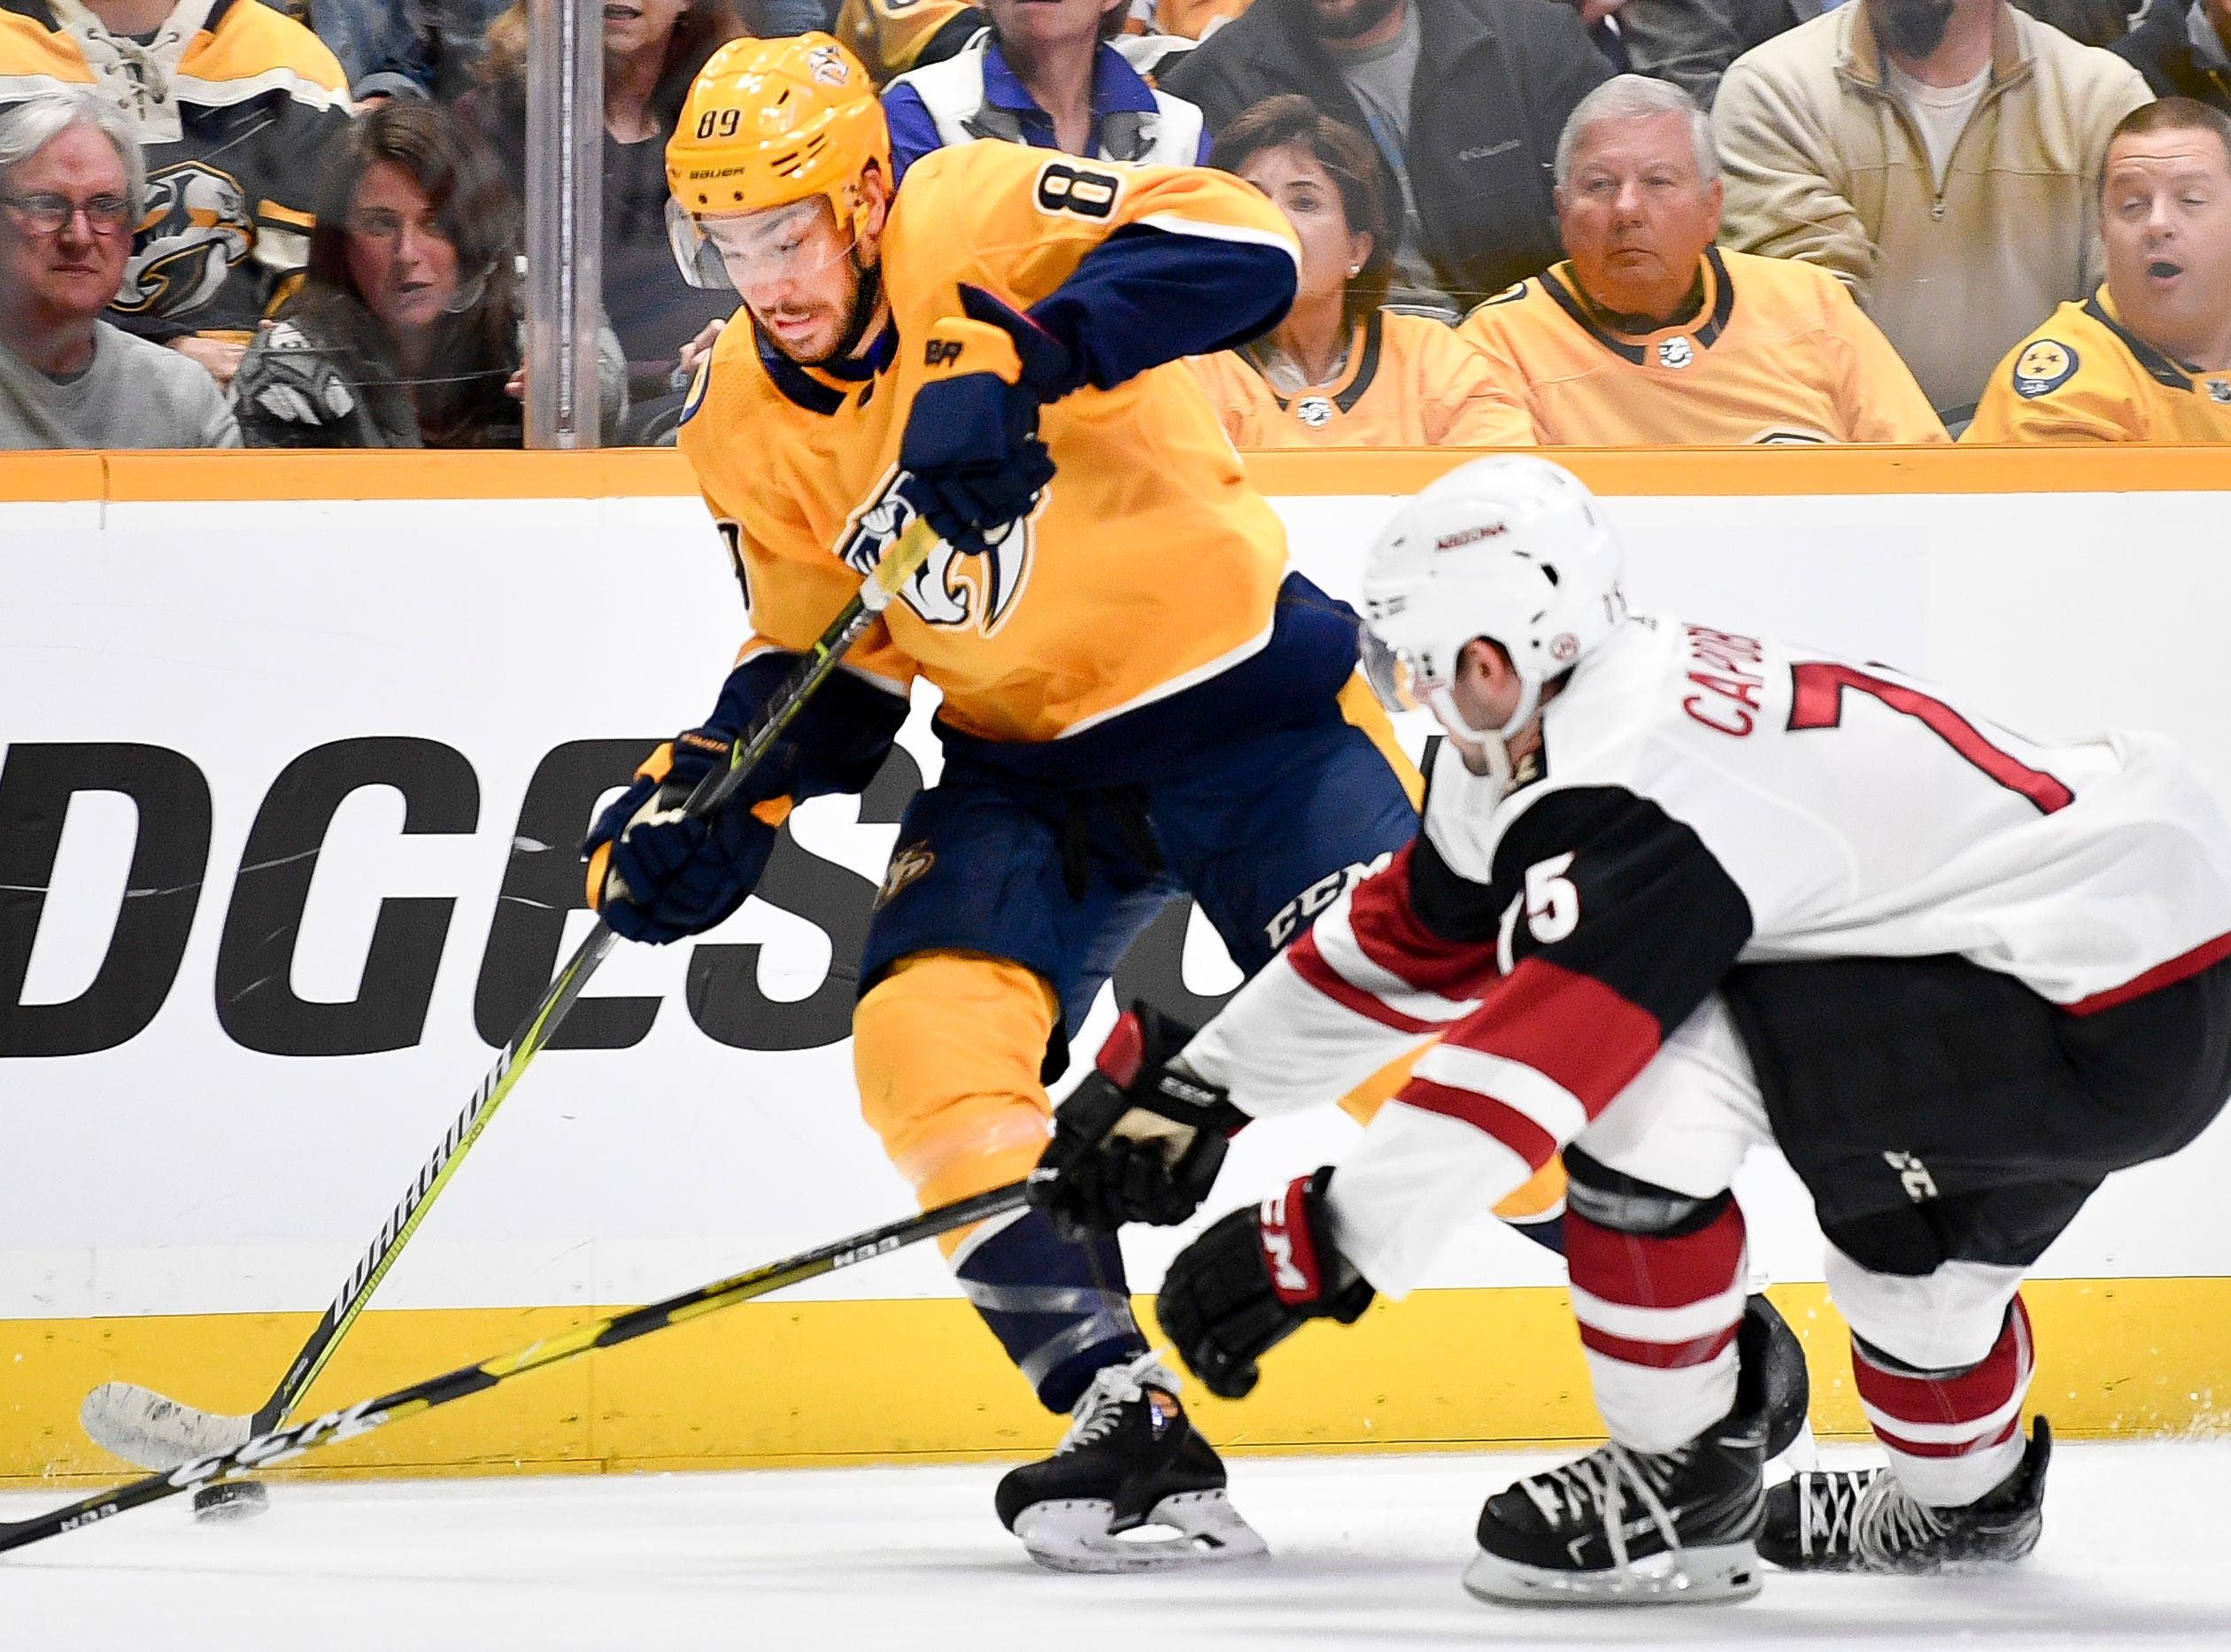 Nashville Predators center Frederick Gaudreau (89) chases the puck with Arizona Coyotes defenseman Kyle Capobianco (75) during the first period at Bridgestone Arena in Nashville, Tenn., Tuesday, Feb. 5, 2019.